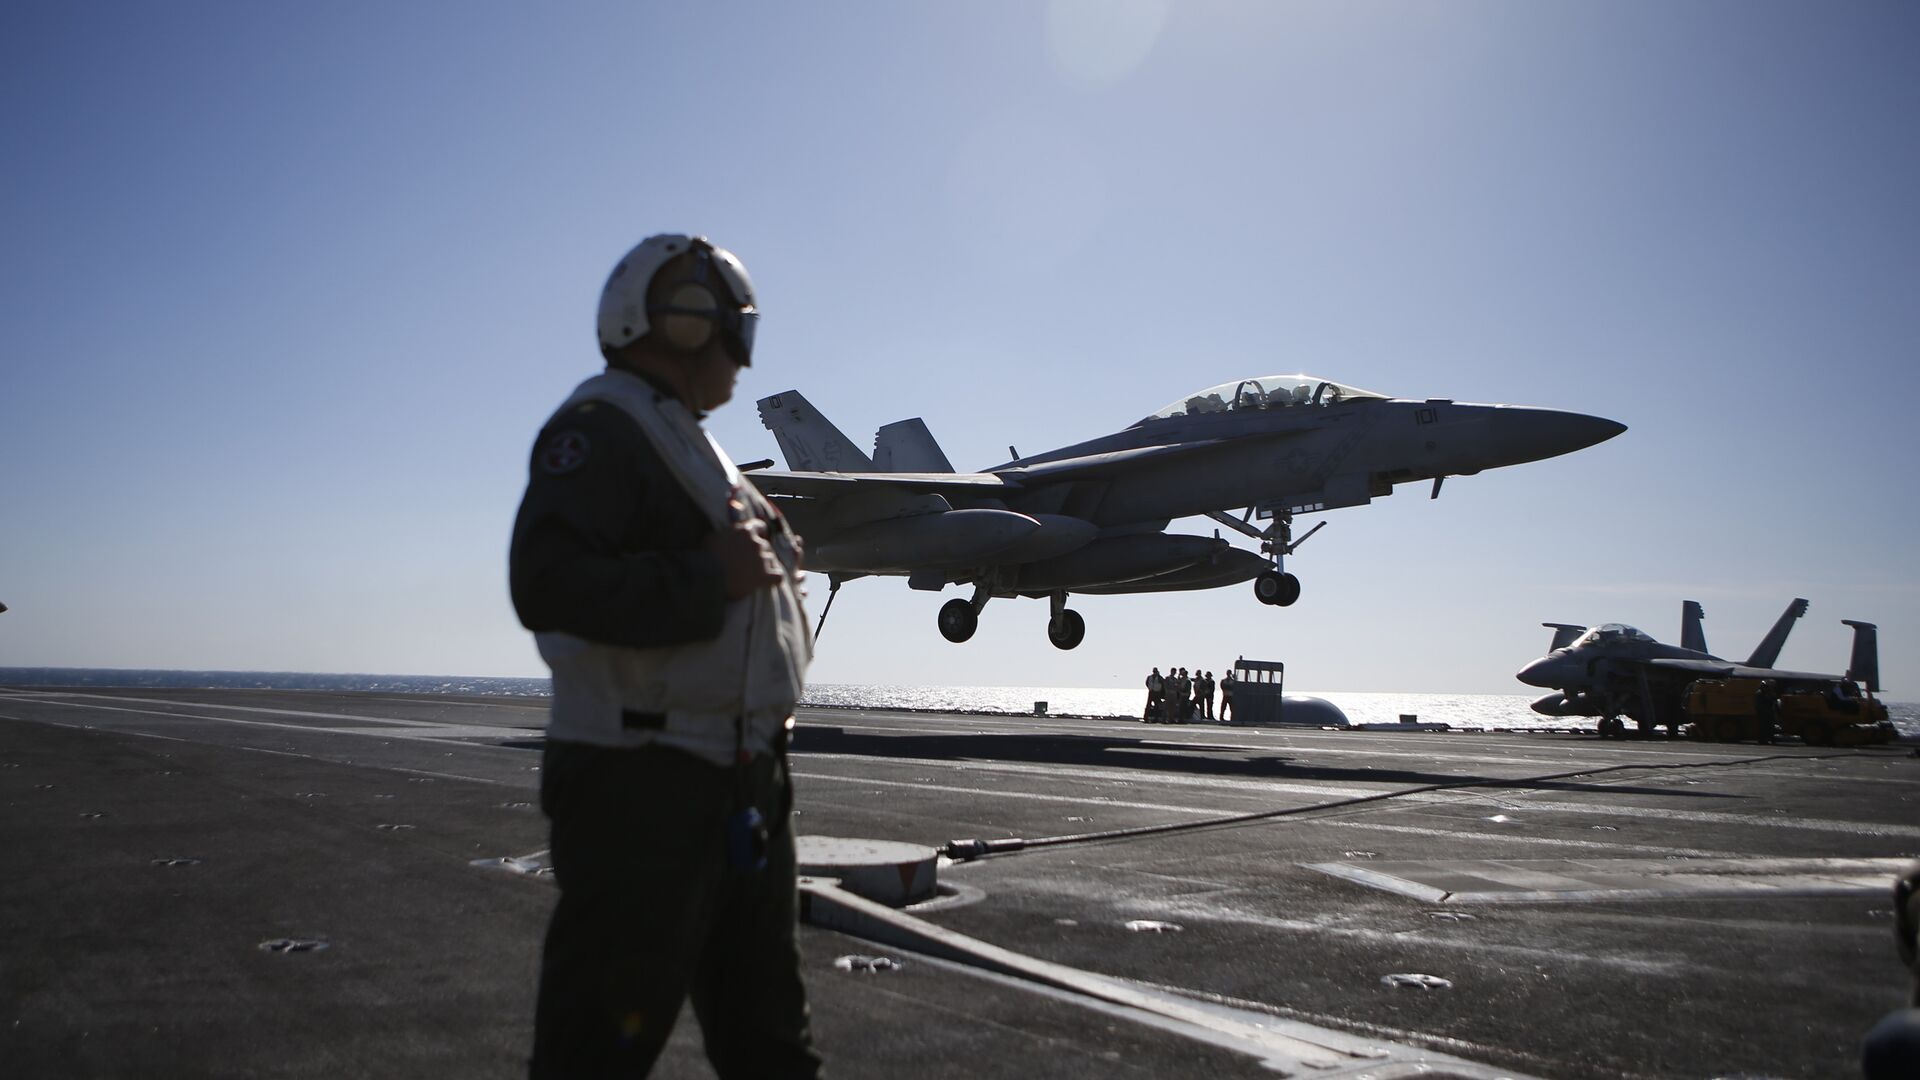 A US Navy crew member looks at an F/A-18 Super Hornet fighter landing onto the deck of the USS Ronald Reagan, a Nimitz-class nuclear-powered aircraft carrier, during a joint naval drill between South Korea and the US in the West Sea off South Korea on October 28, 2015 - Sputnik Italia, 1920, 07.06.2021